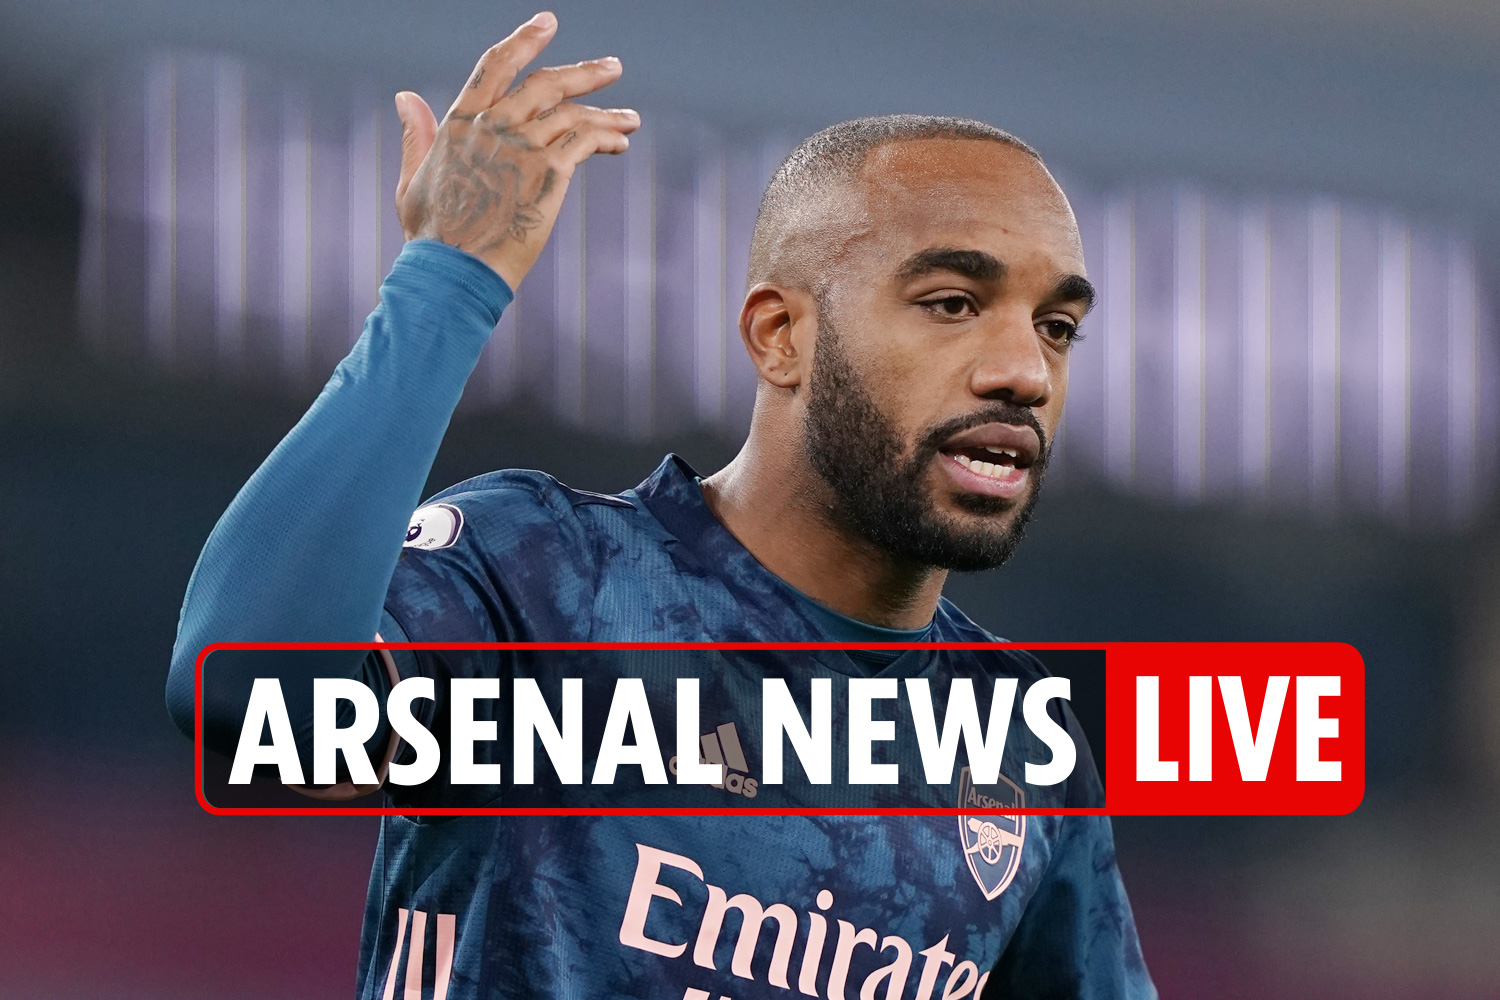 11pm Arsenal news LIVE: Aubameyang SLAMMED, Partey booked on debut in City loss, Saliba transfer, Tierney UPDATE